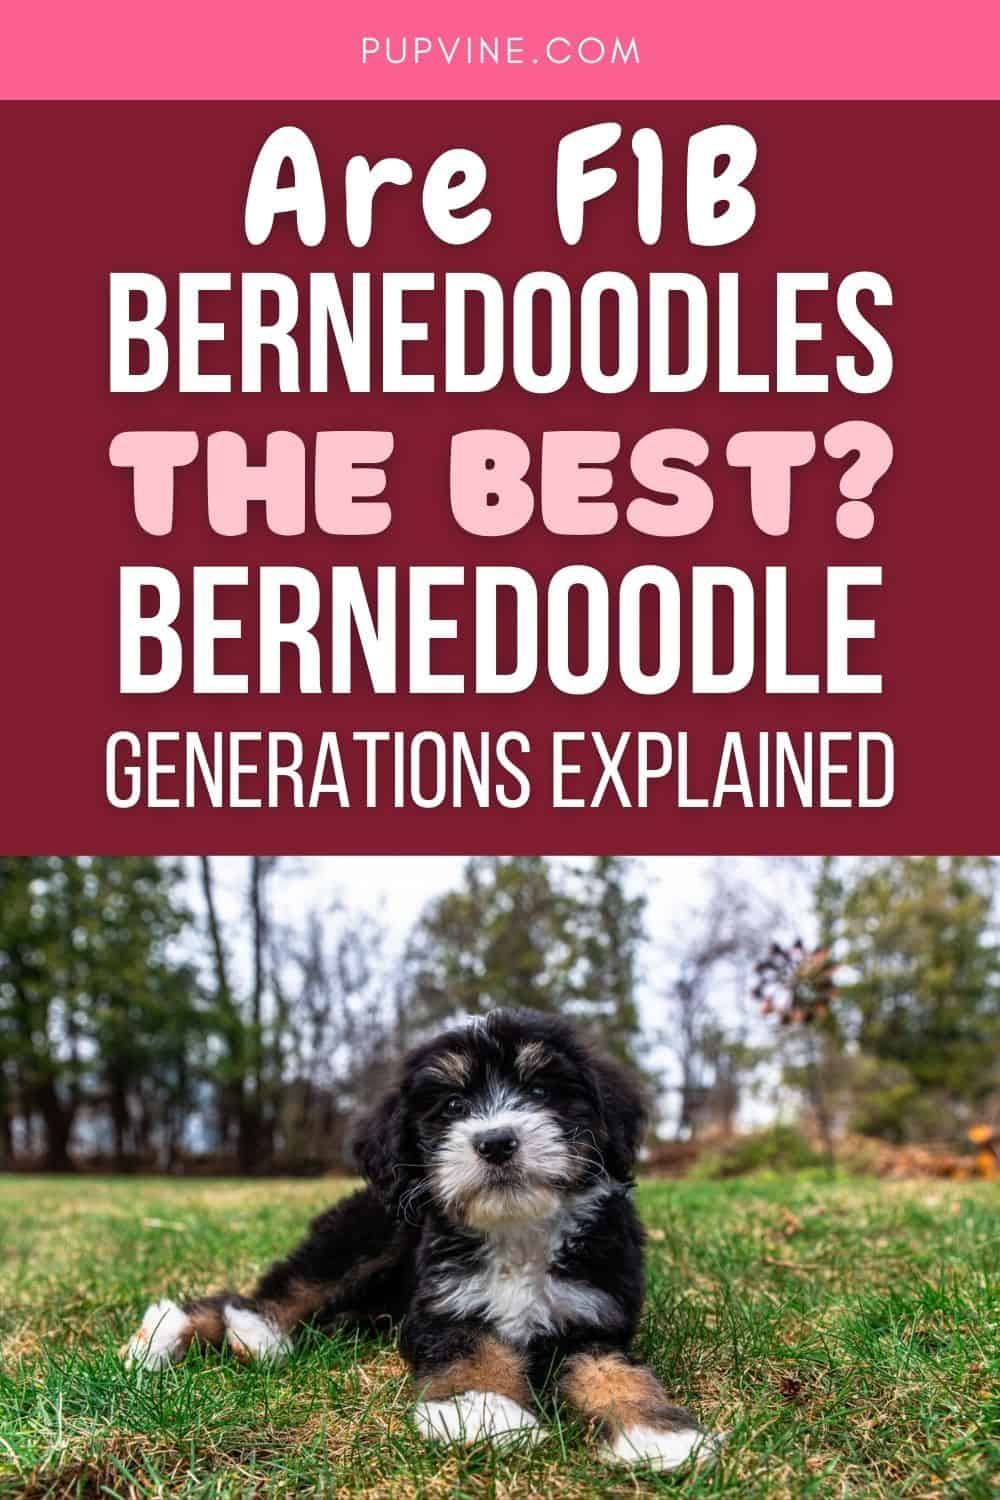 Are F1B Bernedoodles The Best? Bernedoodle Generations Explained